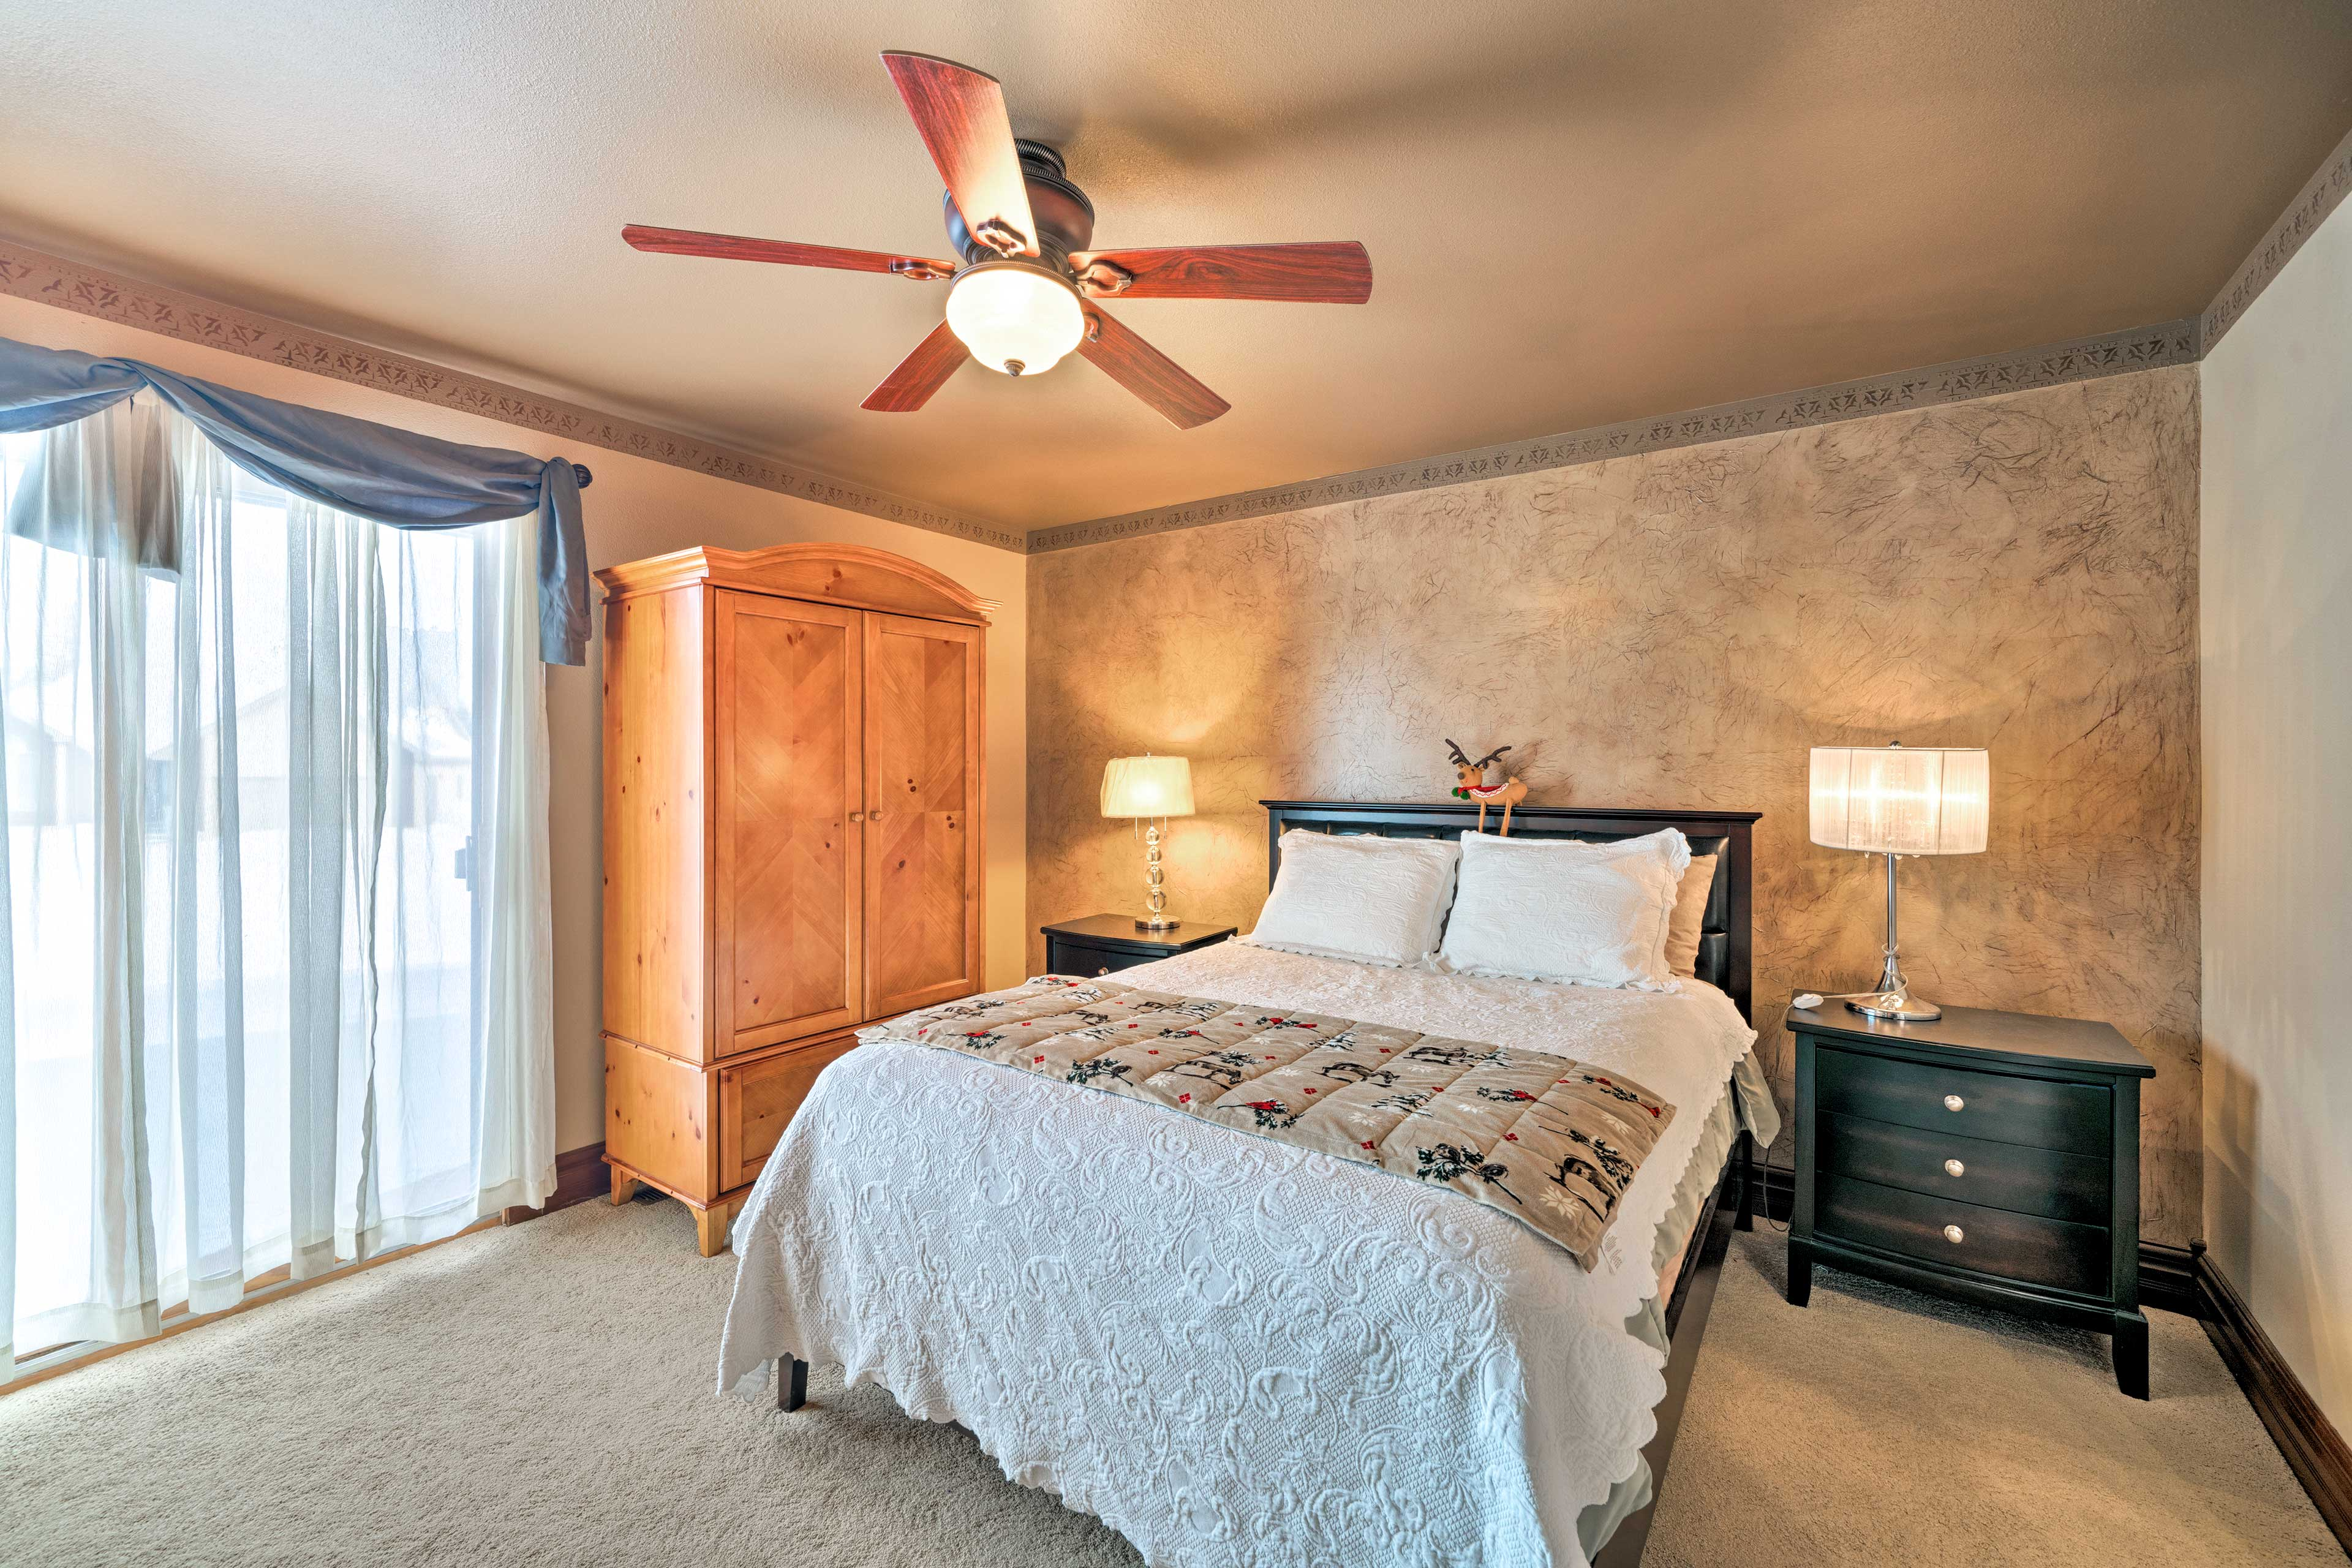 Make your way to either of the 2 bedrooms when it's time to hit the hay!